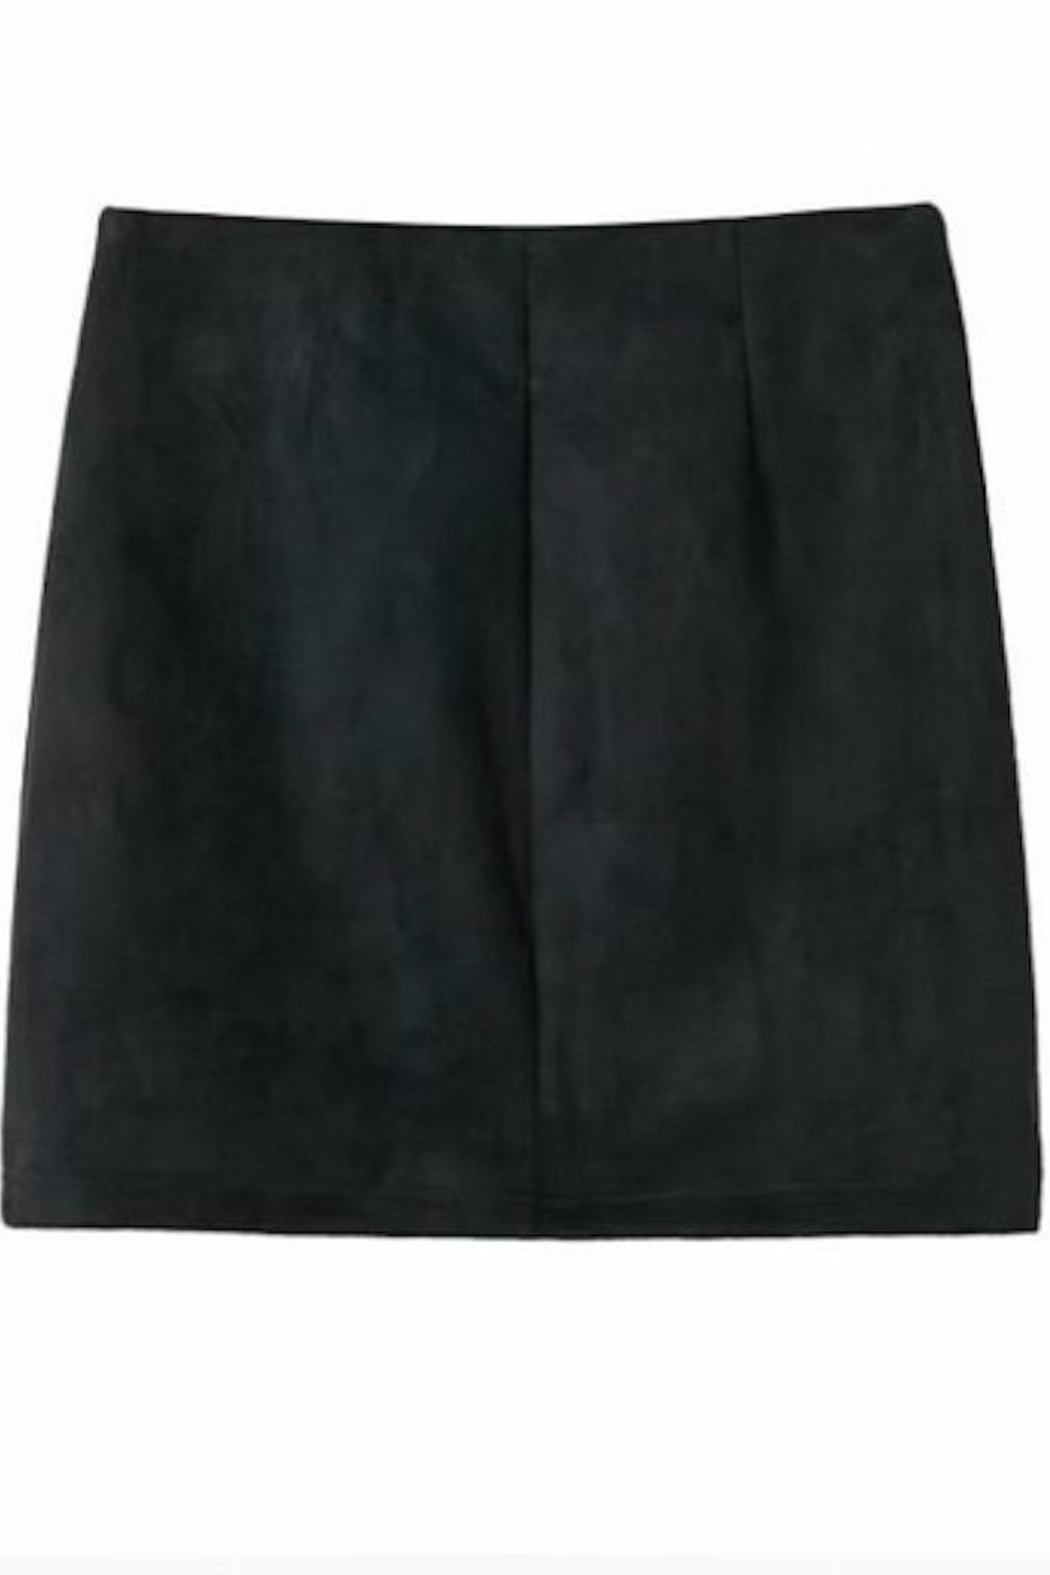 Fashion Pickle Black Suede Skirt - Front Full Image